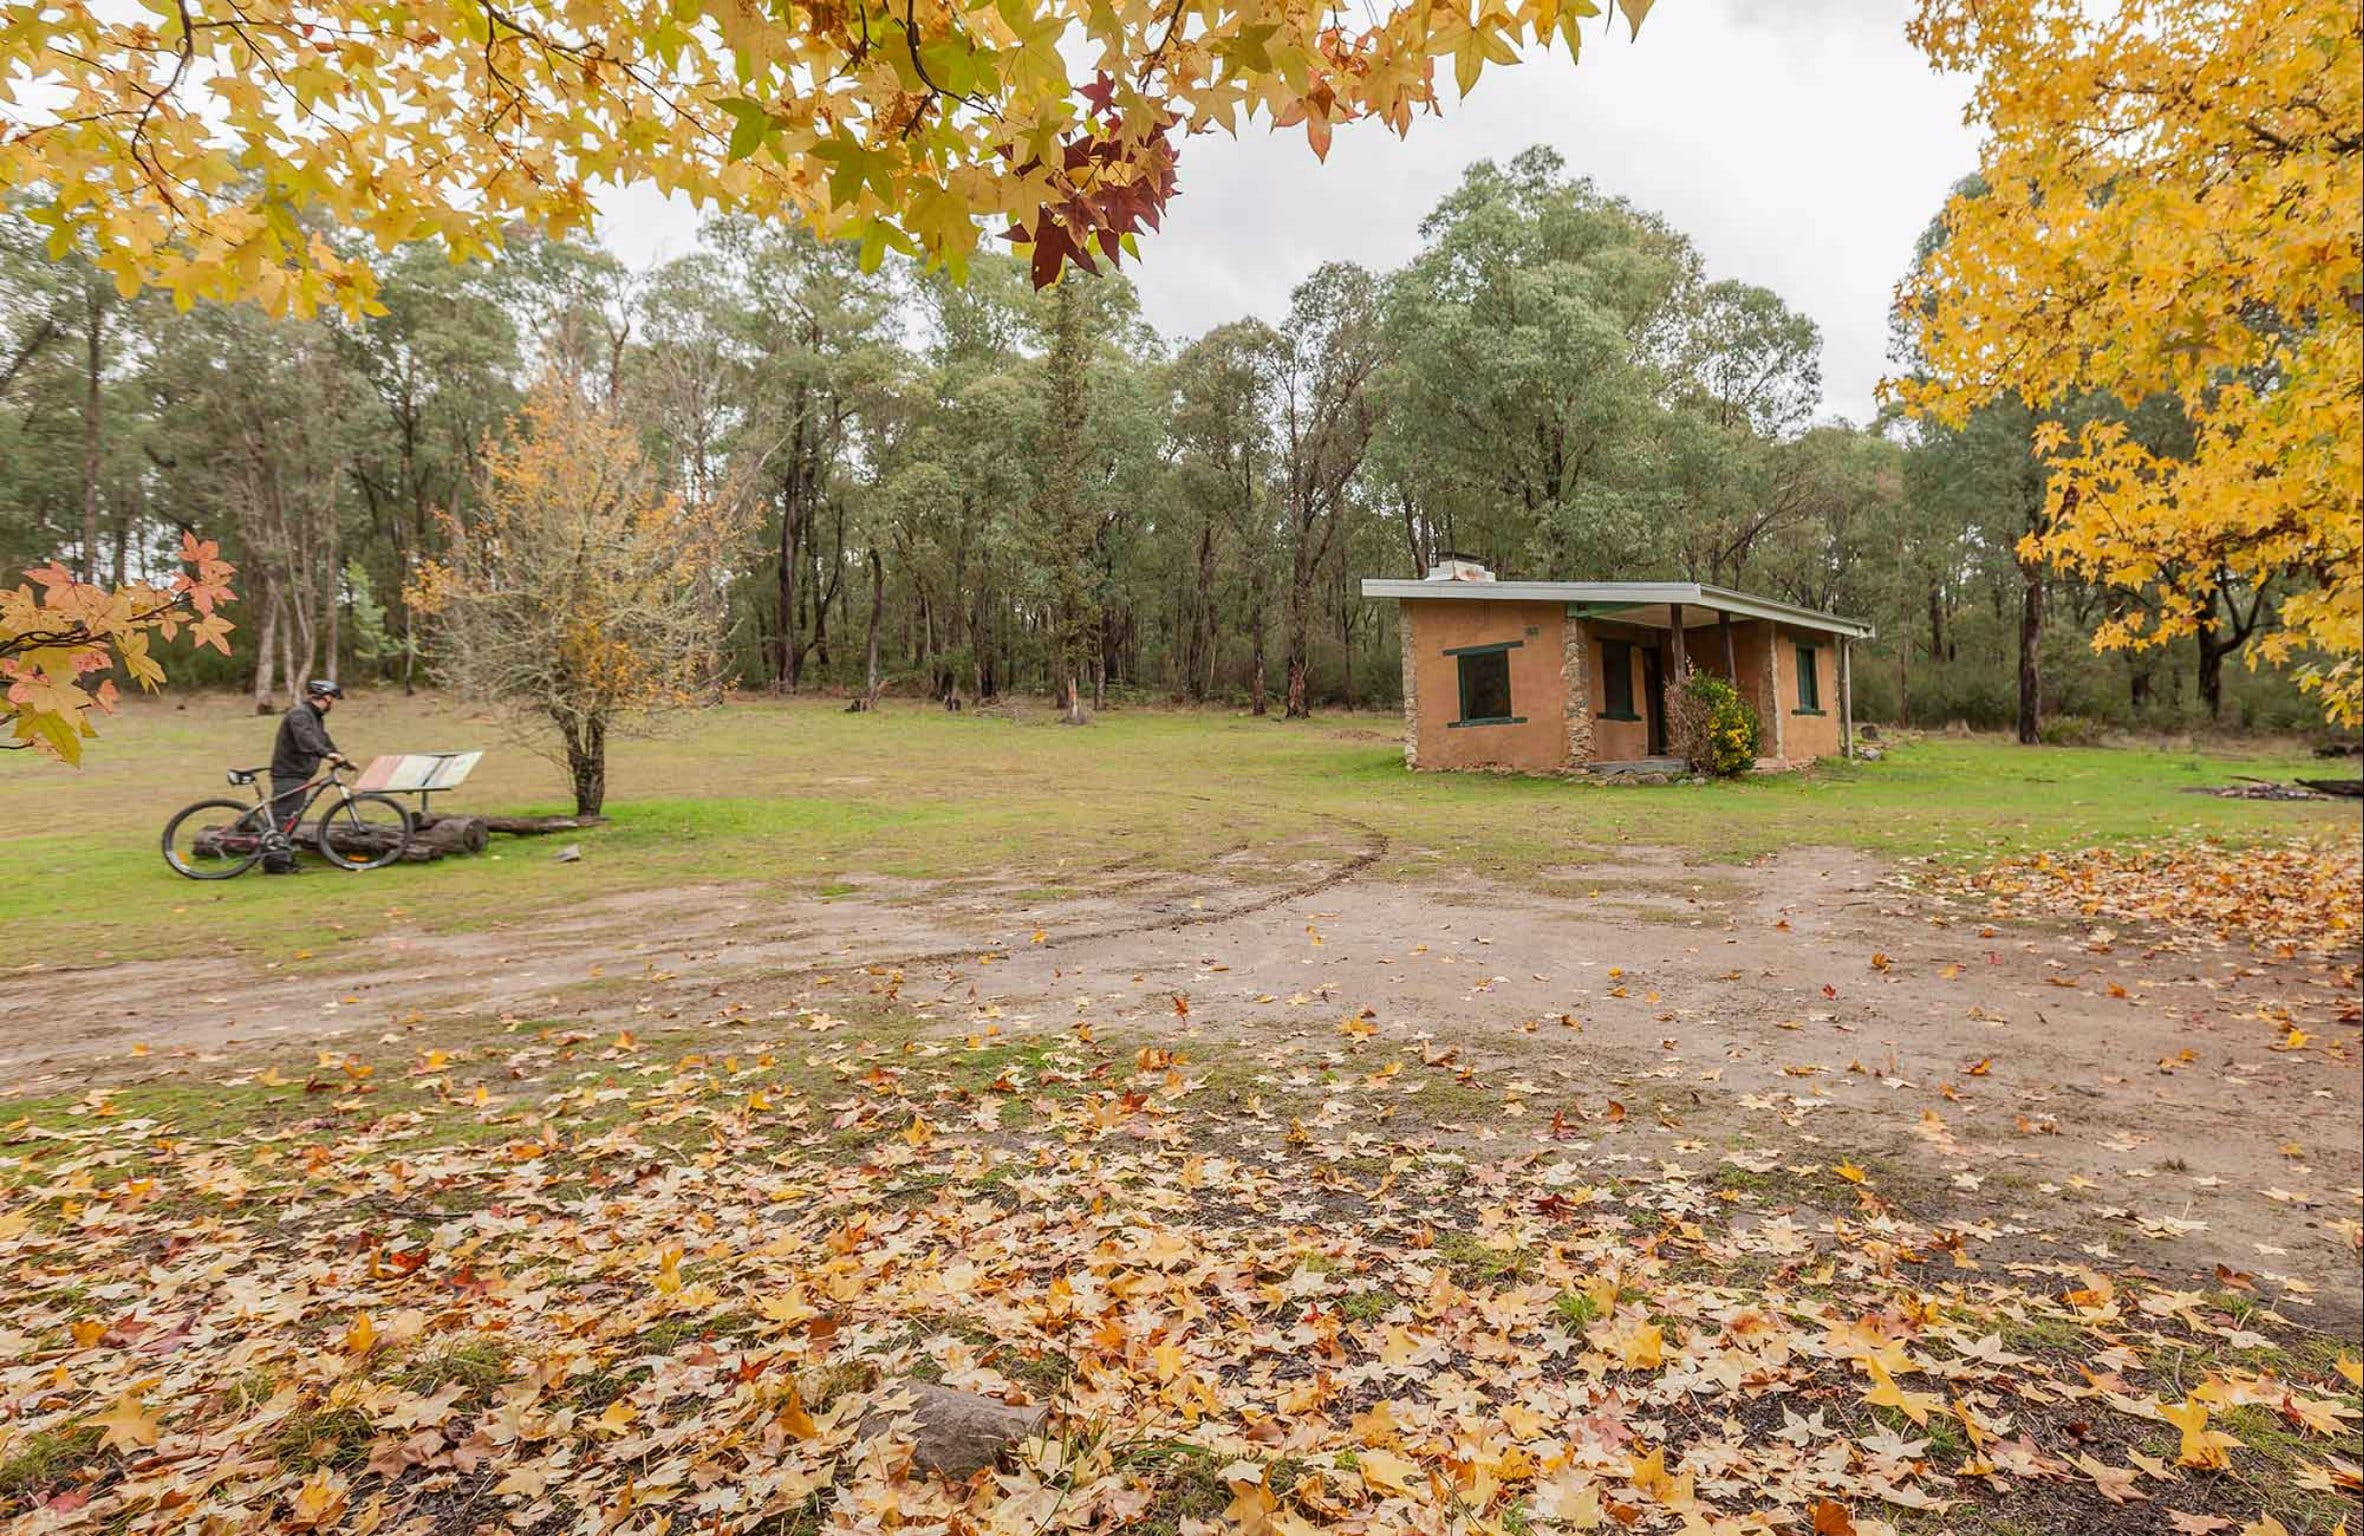 Major Clews Hut Walking Track - Accommodation Australia